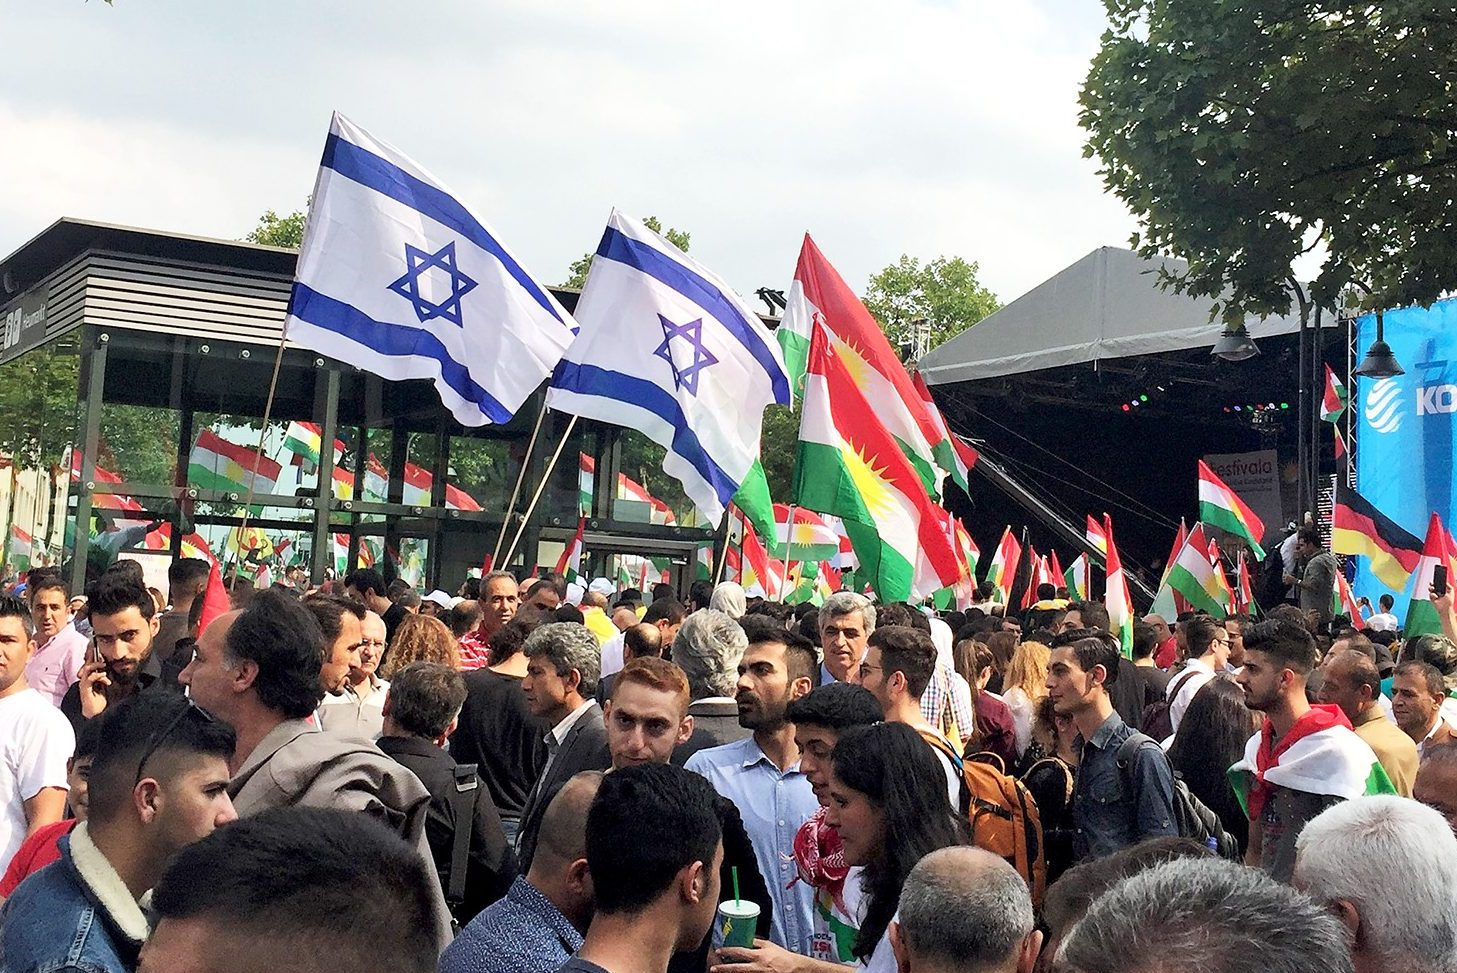 Photograph shows a crowded square full of Kurdish people of various ages waving red, green and white Kurdish flags along with white and blue Israeli flags